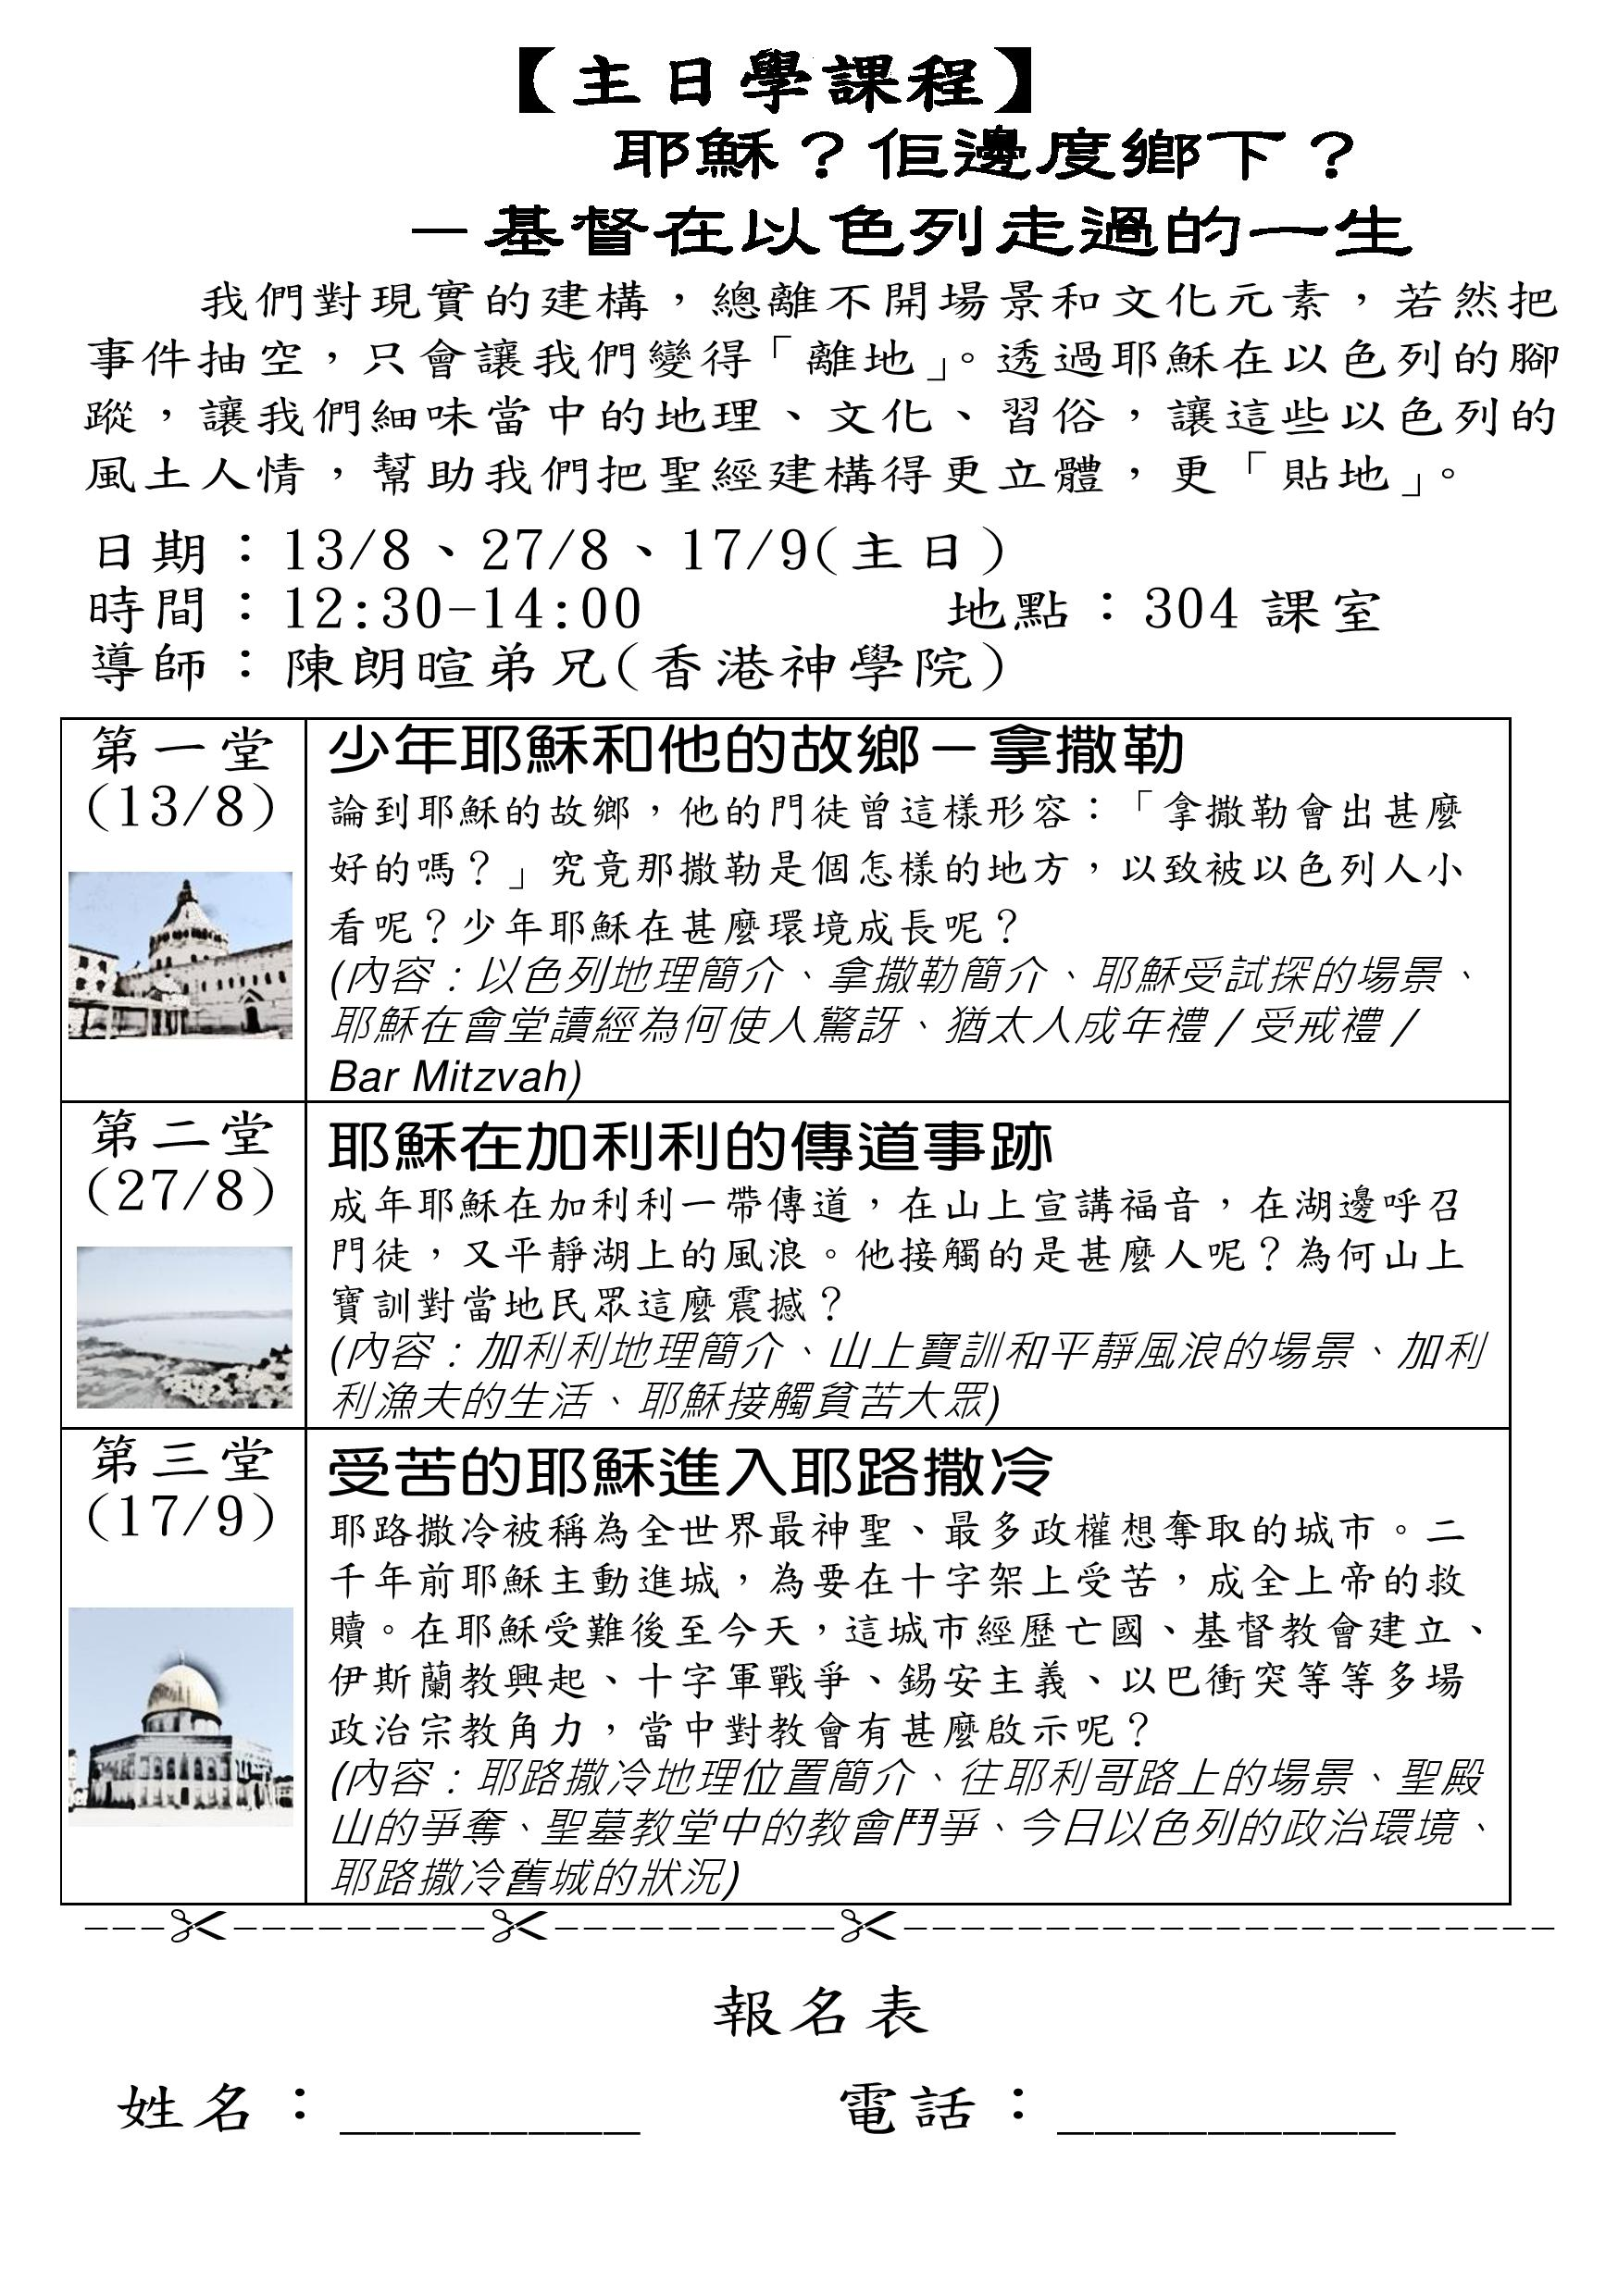 20170730-page-001